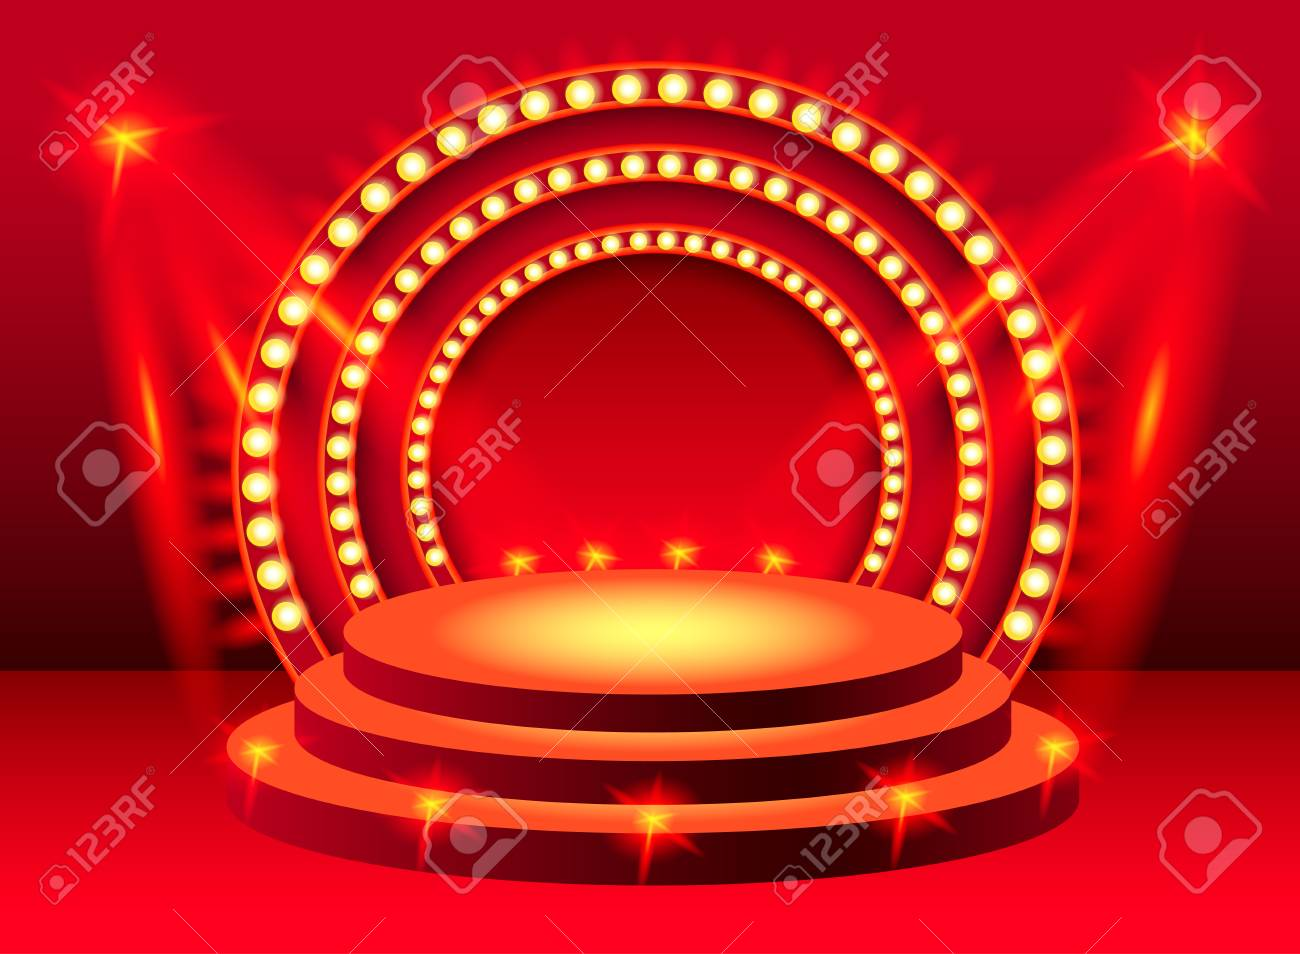 Round red stage podium with lighting design element for banners